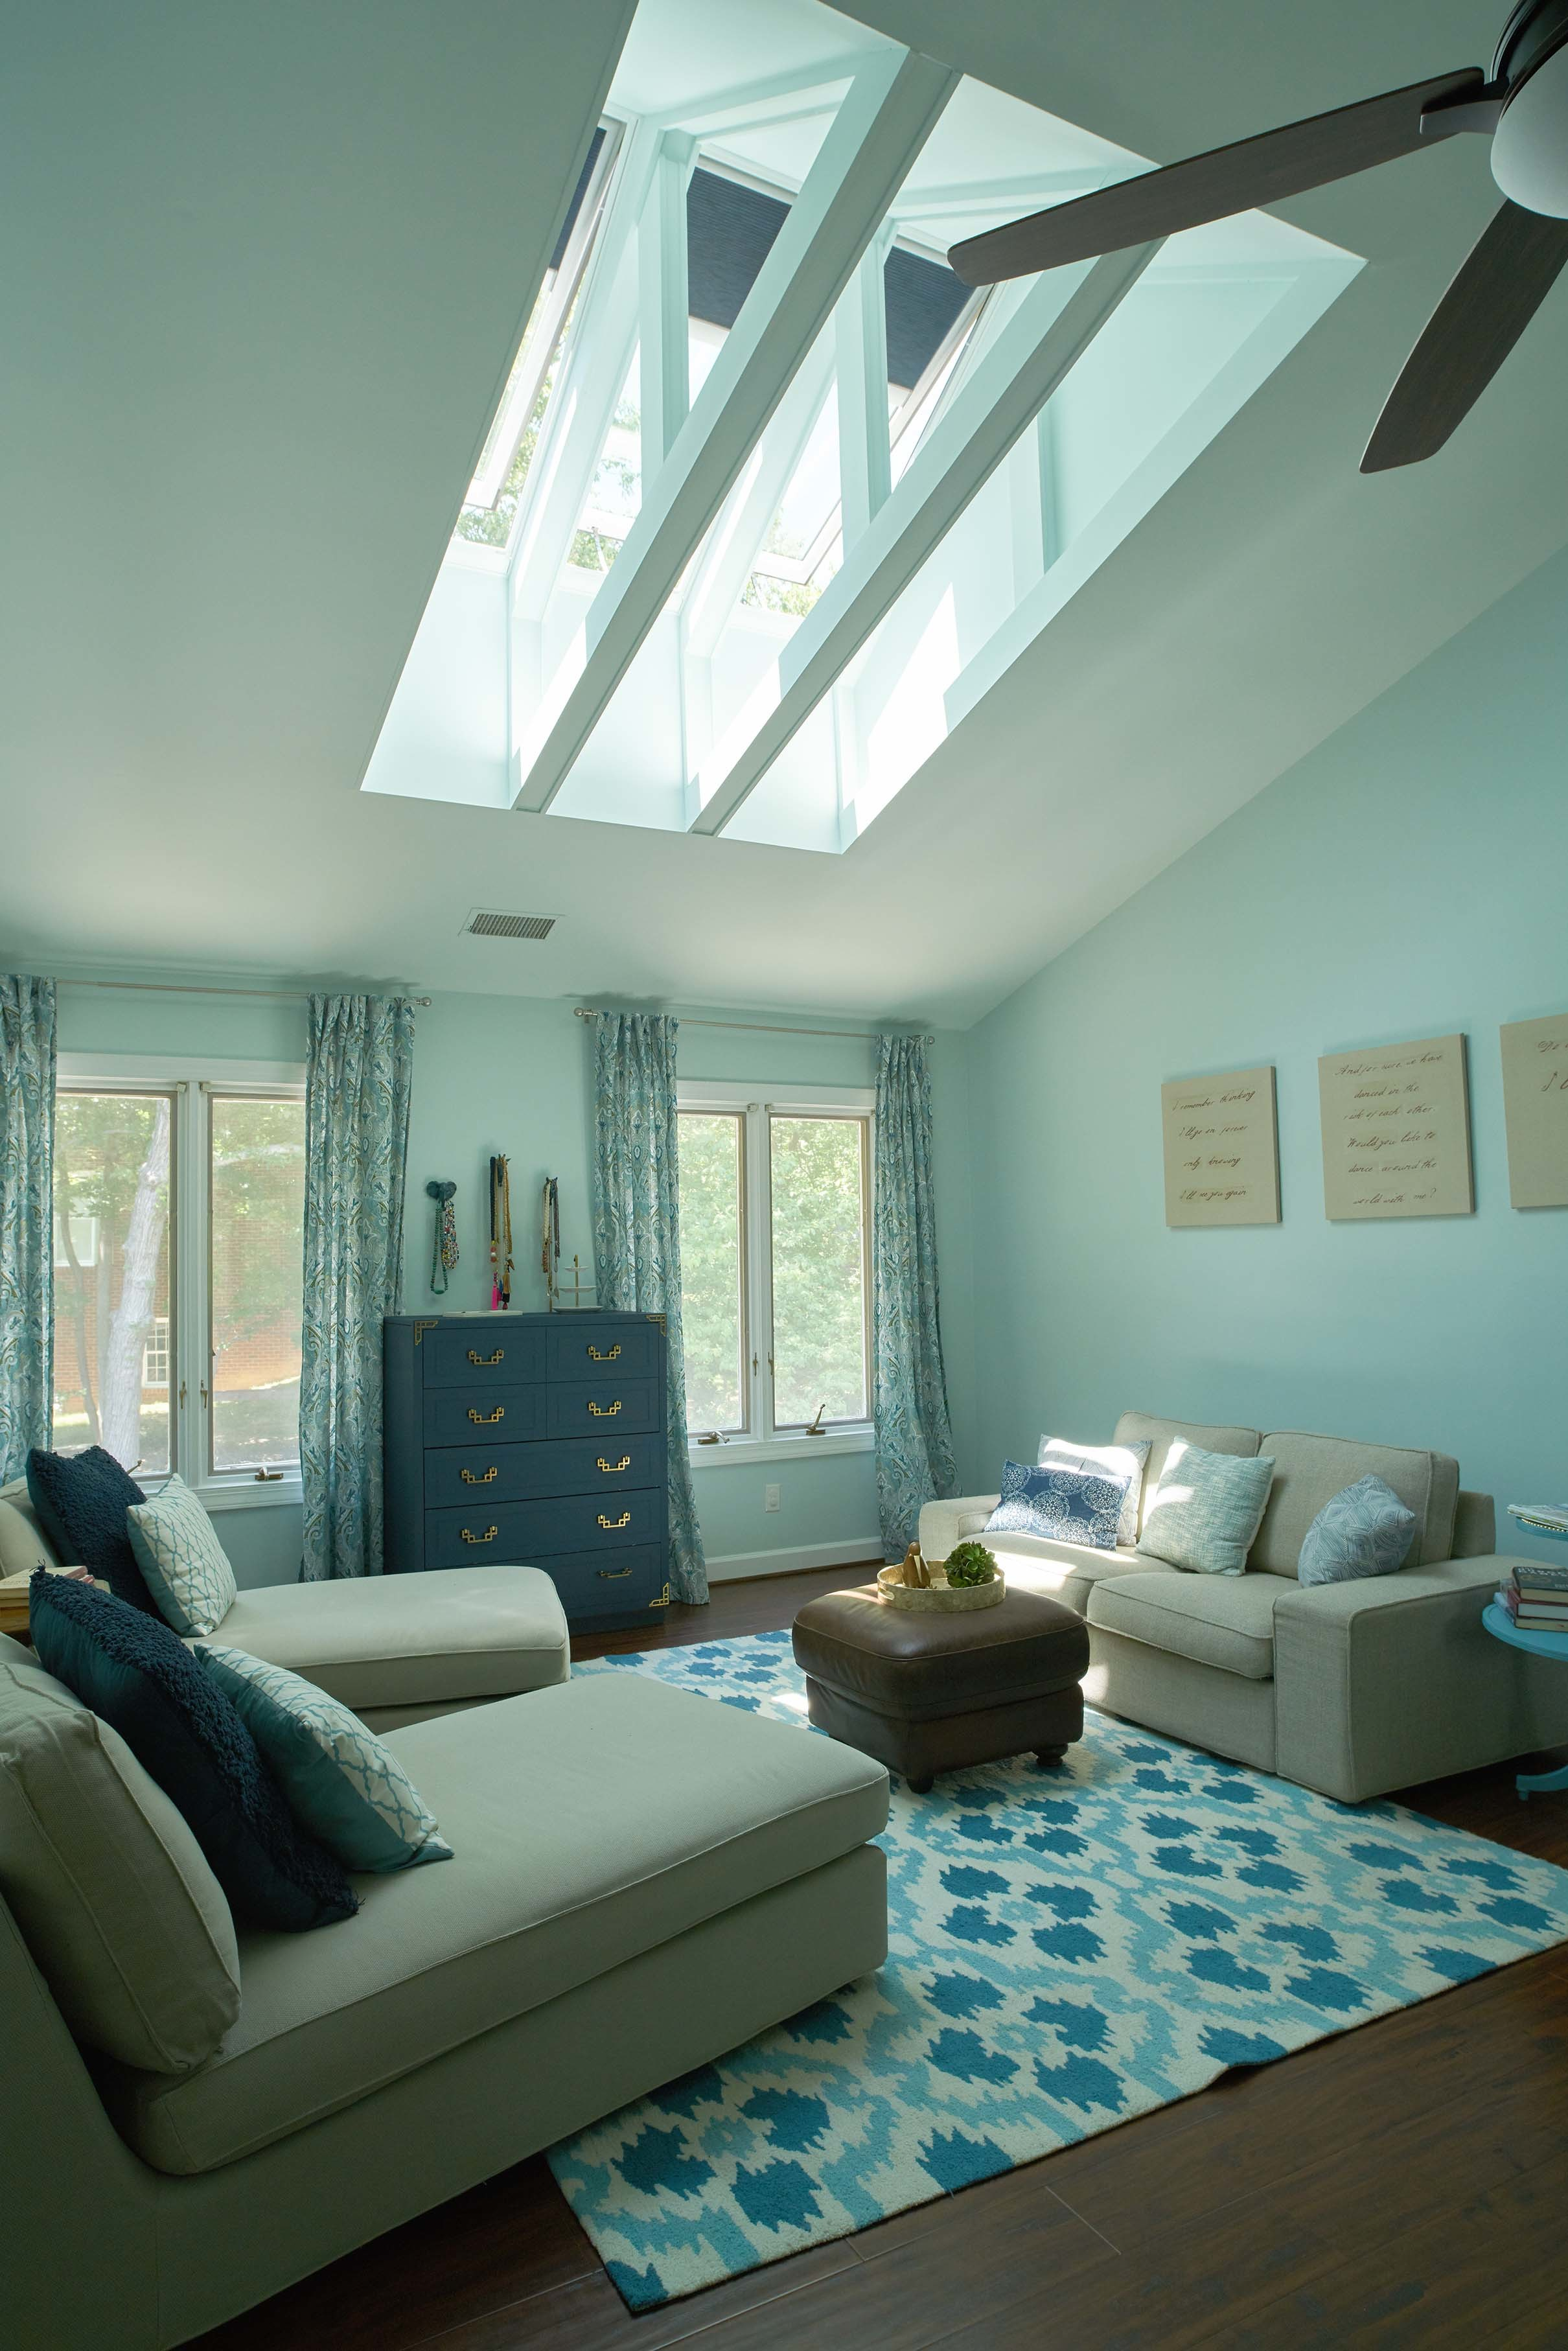 three skylights installed in between exposed roof trusses over a blue and green living room